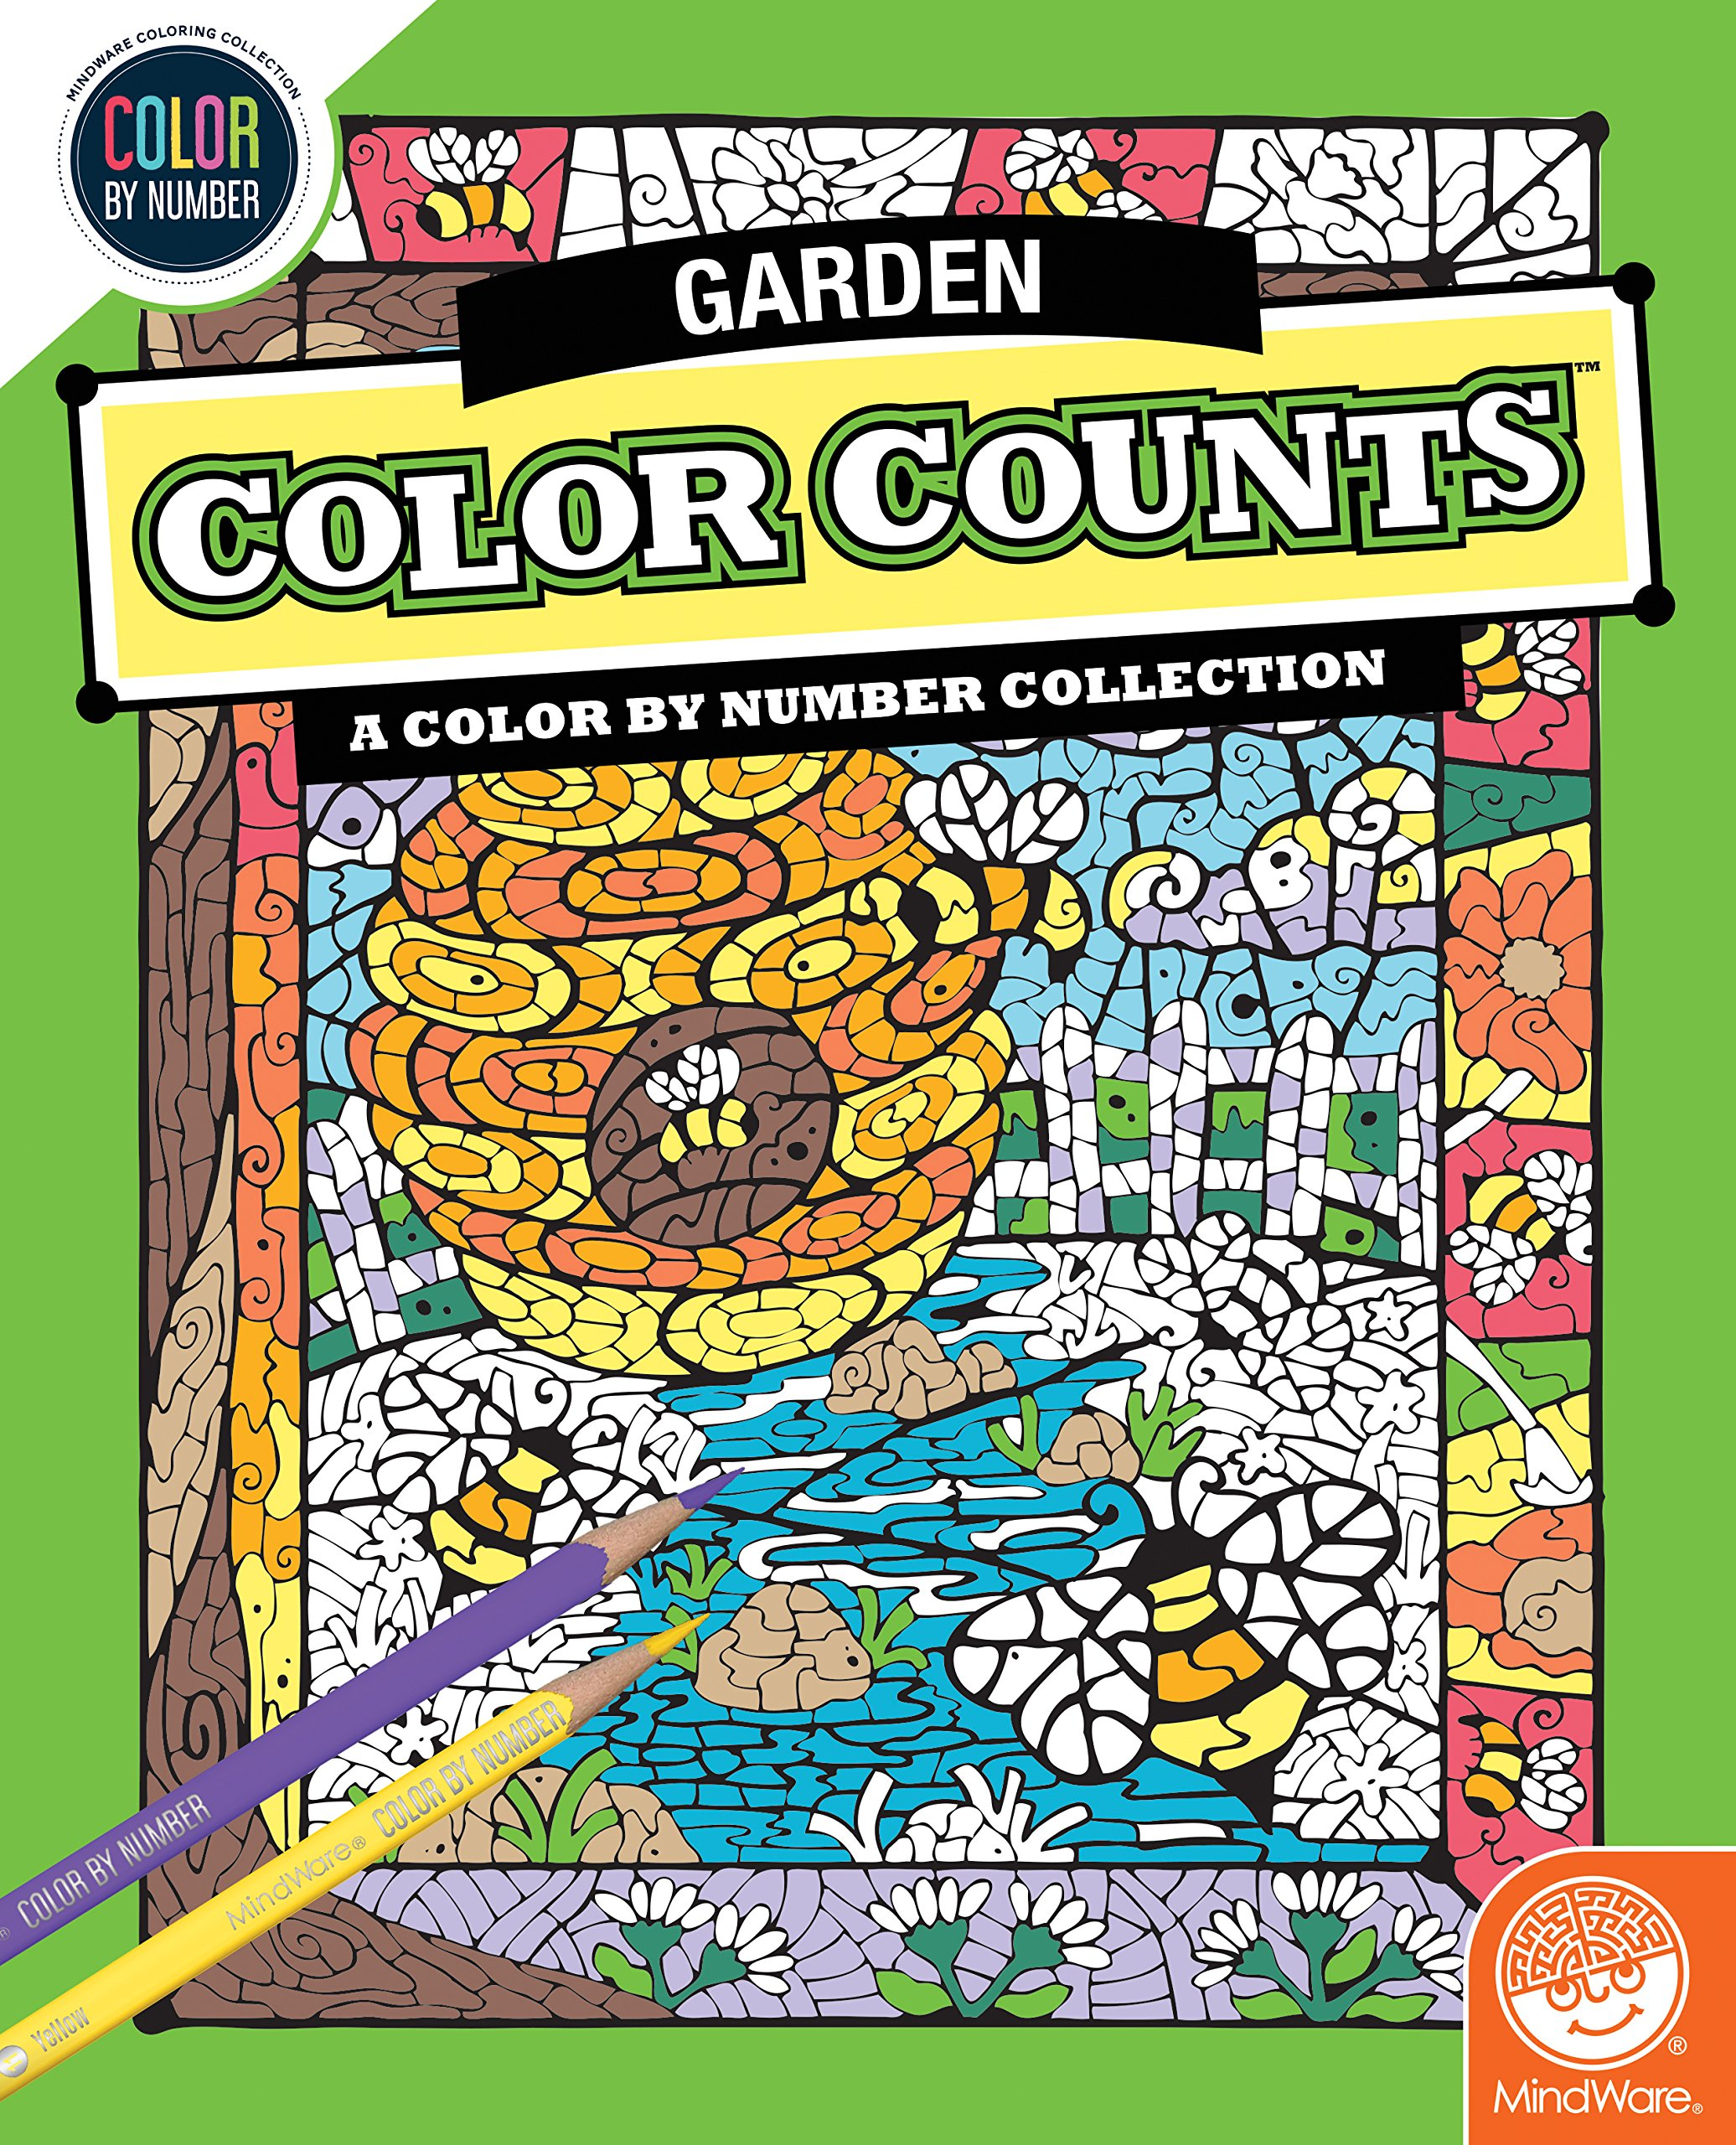 mindware color counts - Google Search | Coloring pages, Coloring ... | 2560x2072